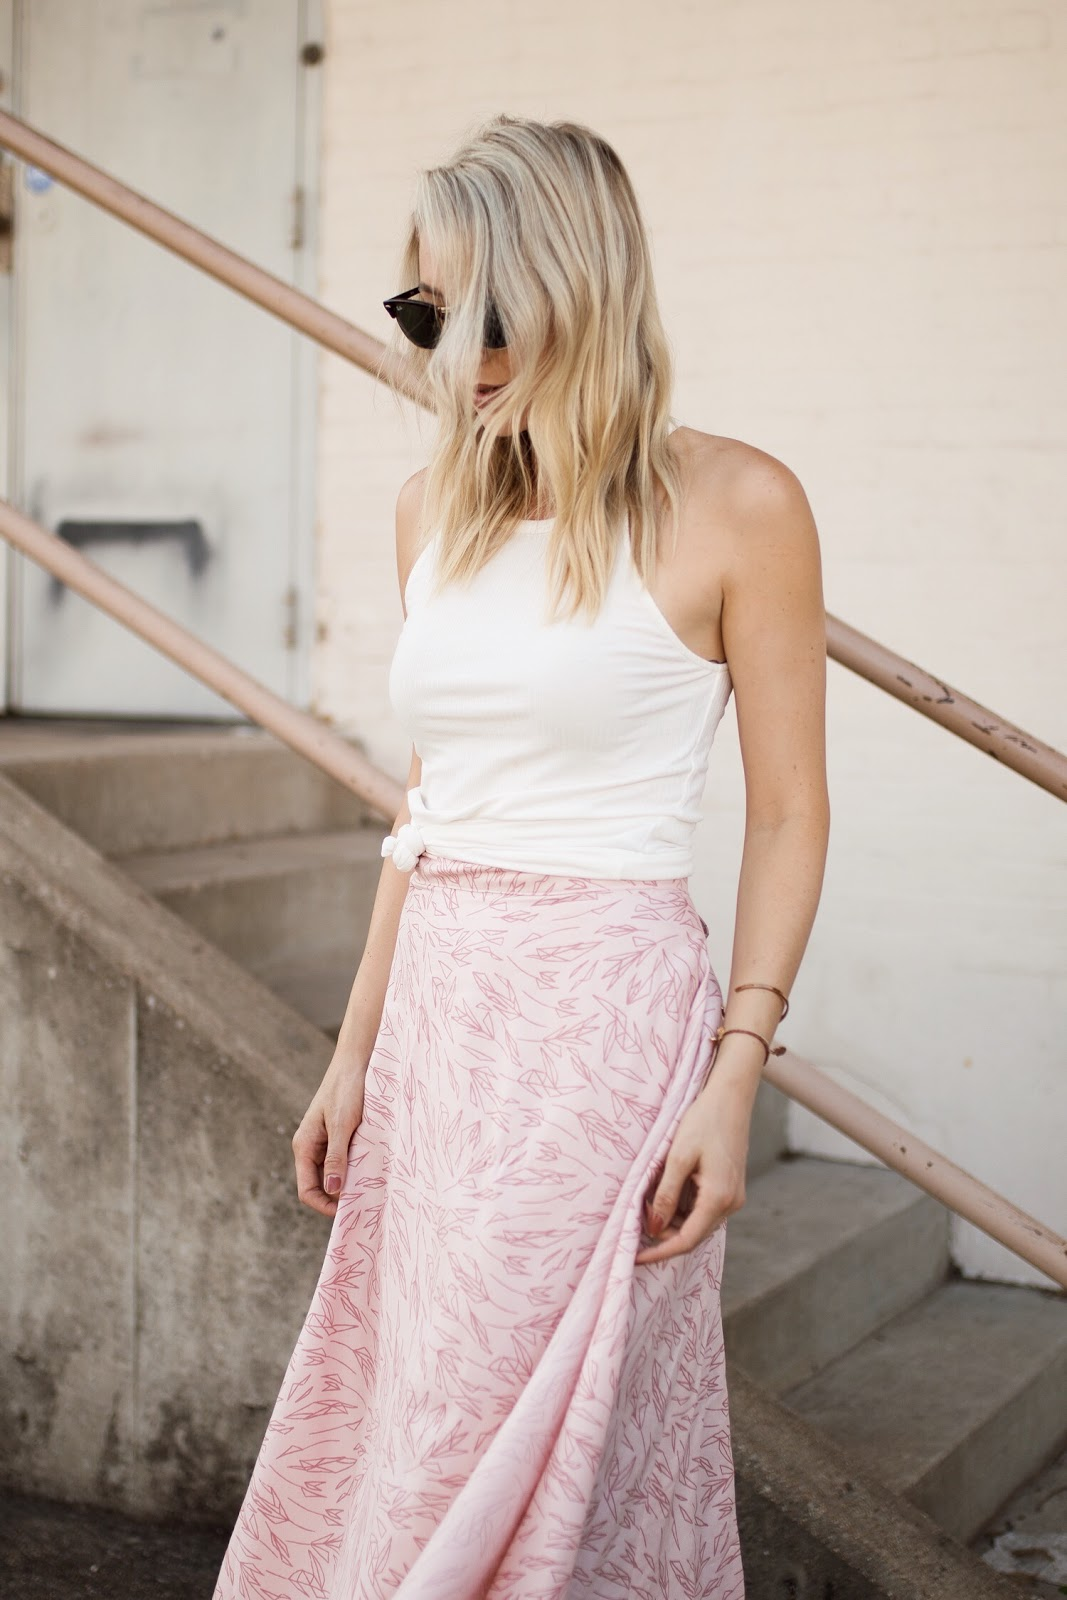 beautiful summer maxi skirt handmade by women employed by nonprofit By Grace